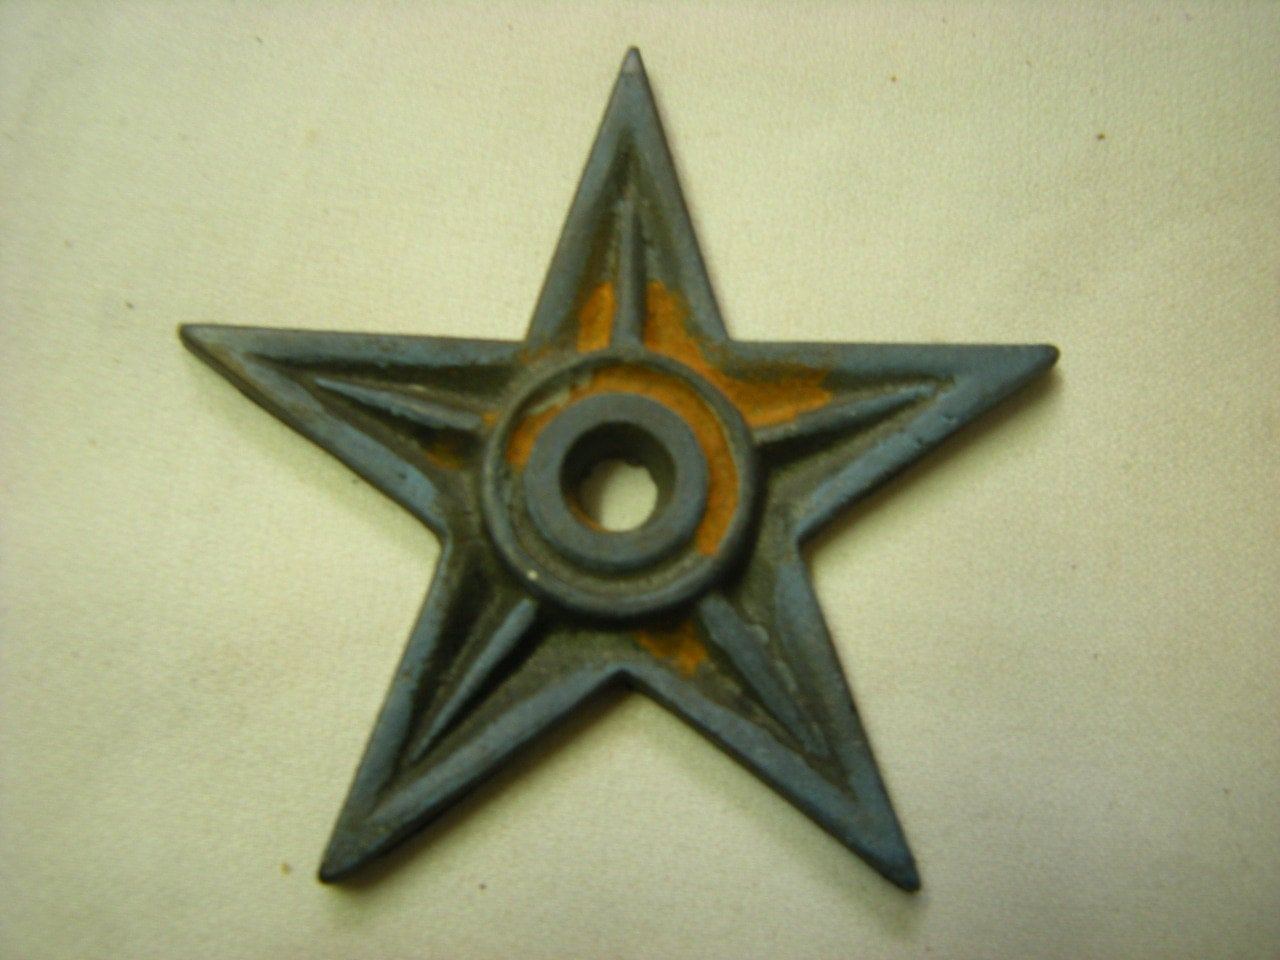 Star Wall Decor Ideas: Cast Iron Star-texas Star-wall Decor-wall